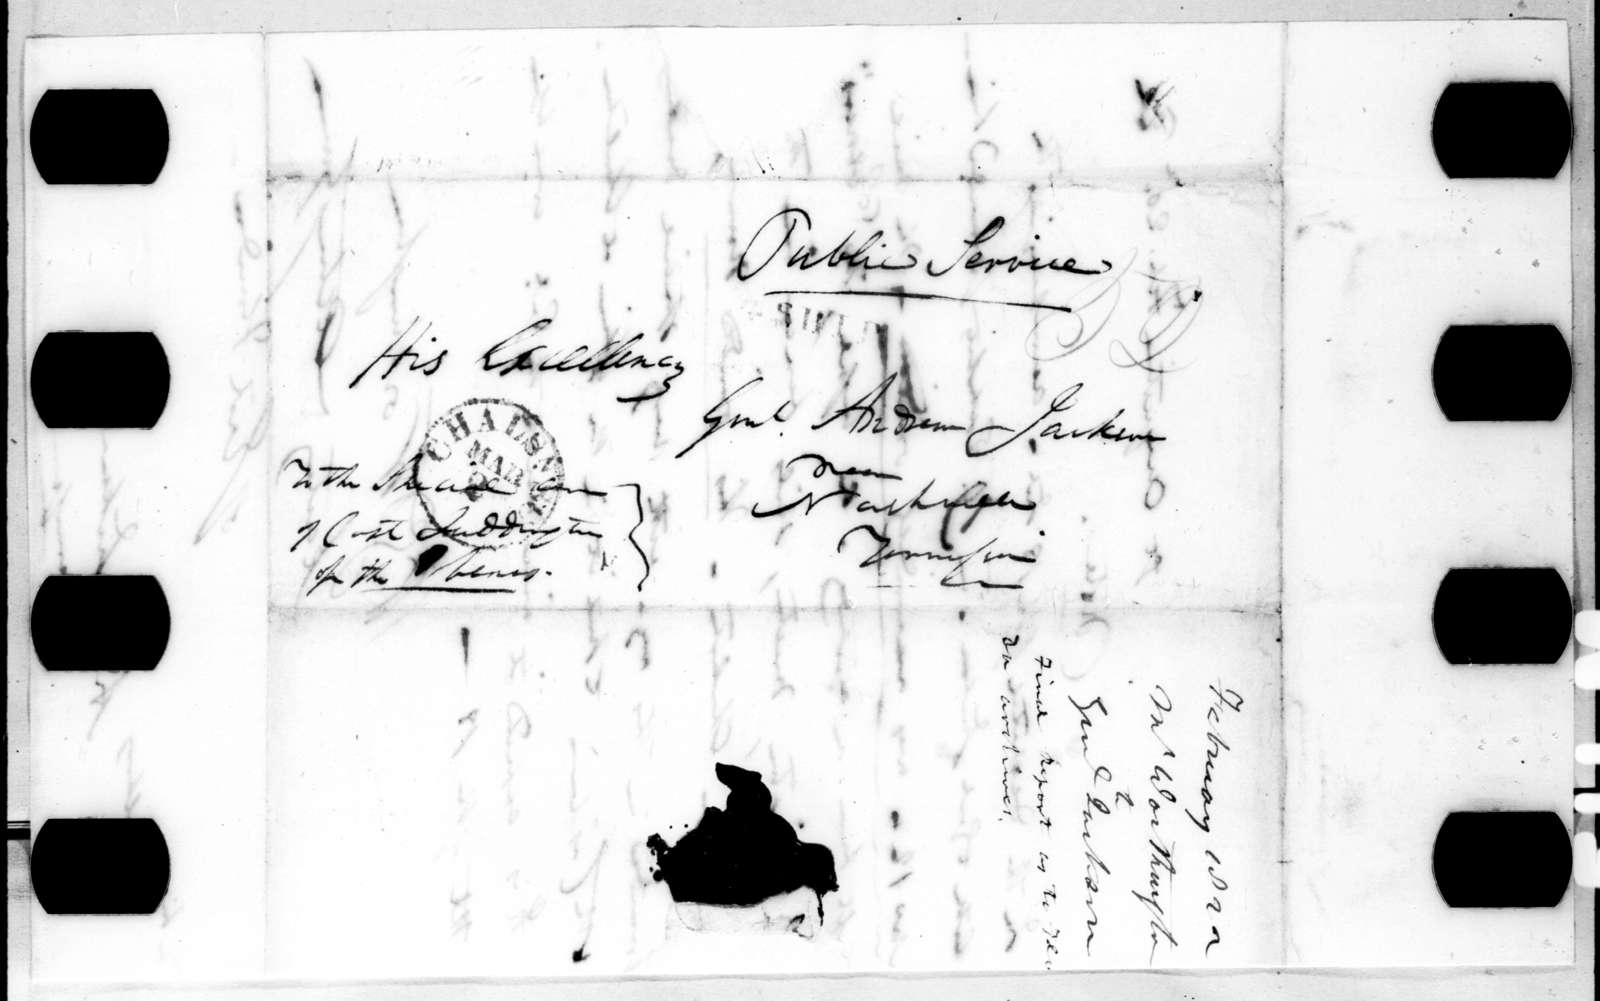 William Grafton Dulany Worthington to Andrew Jackson, February 20, 1822